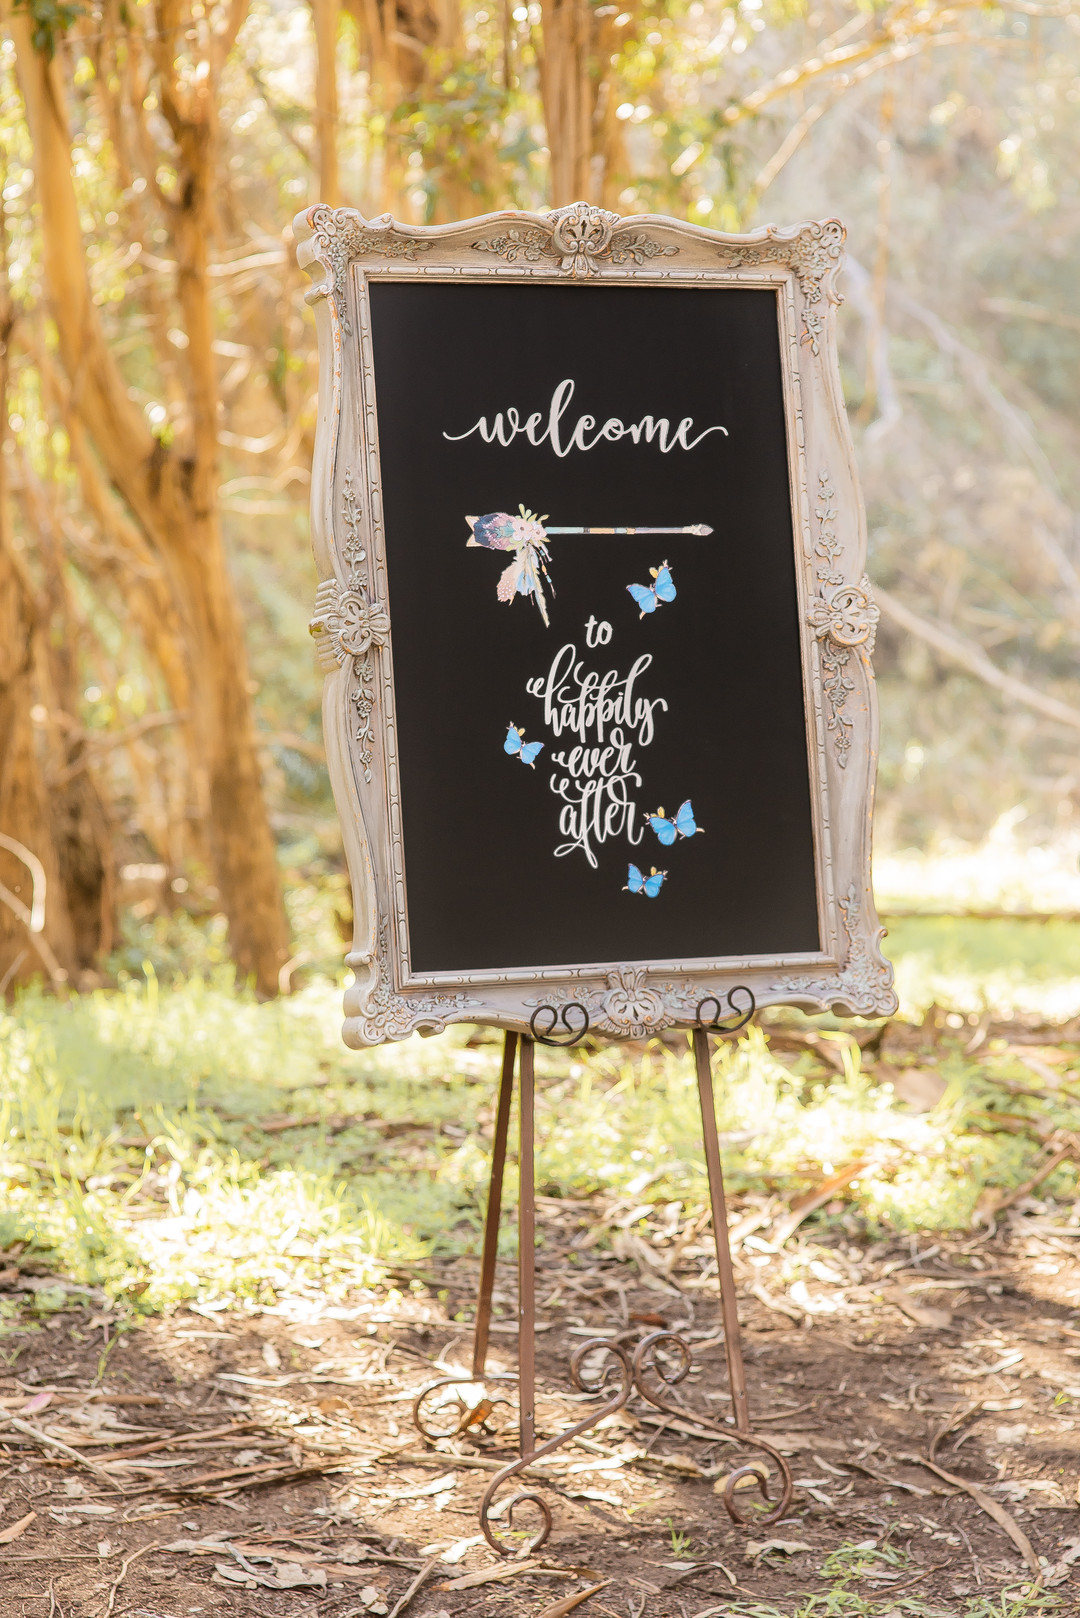 www.santabarbarawedding.com   Staci and Michael Photography   Montana de Oro State Park   The Blue Farmhouse   Wedding welcome sign